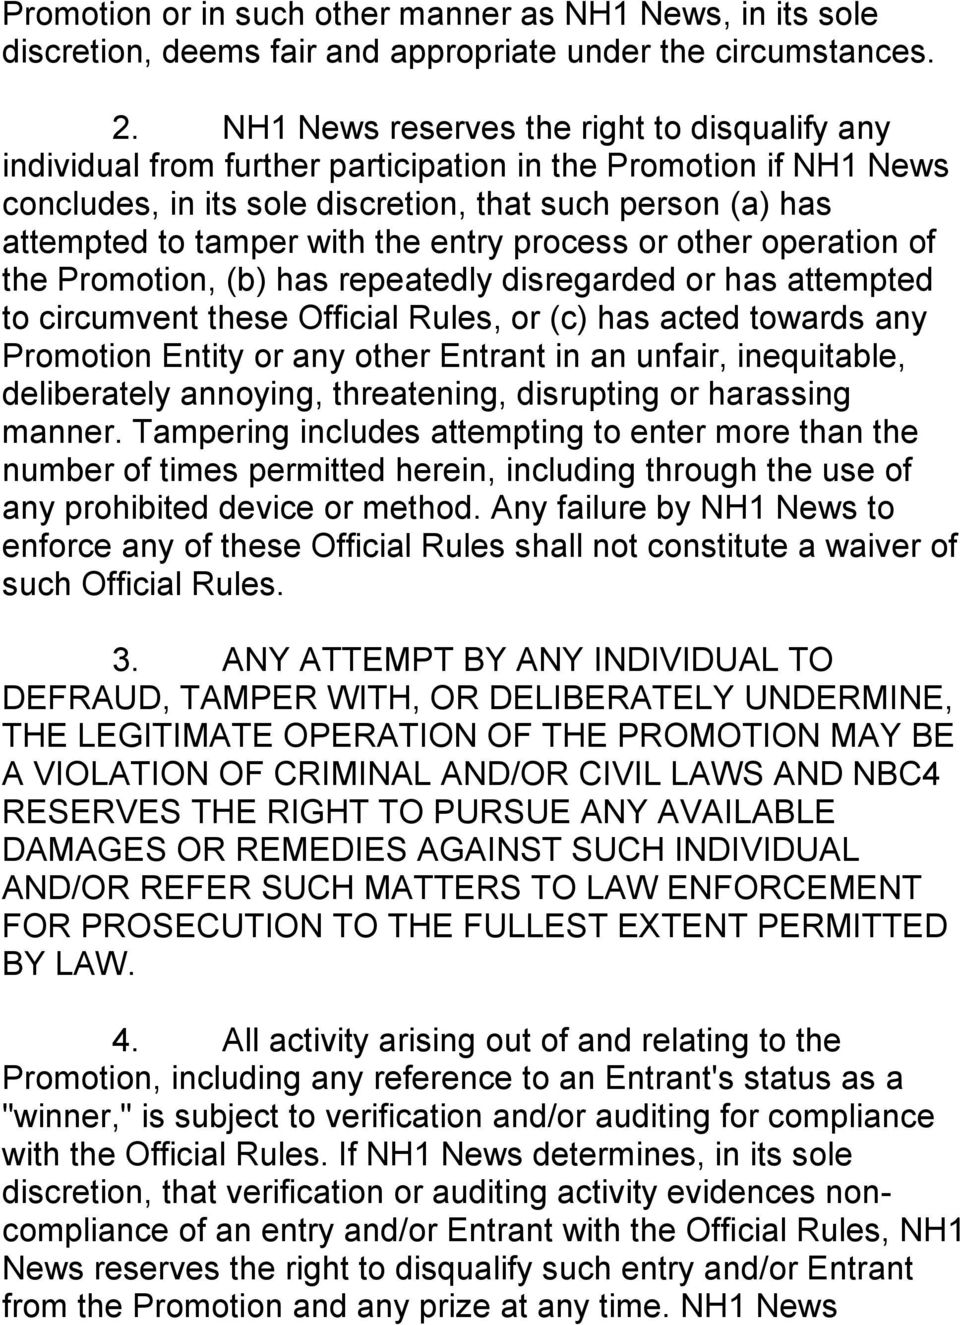 the entry process or other operation of the Promotion, (b) has repeatedly disregarded or has attempted to circumvent these Official Rules, or (c) has acted towards any Promotion Entity or any other